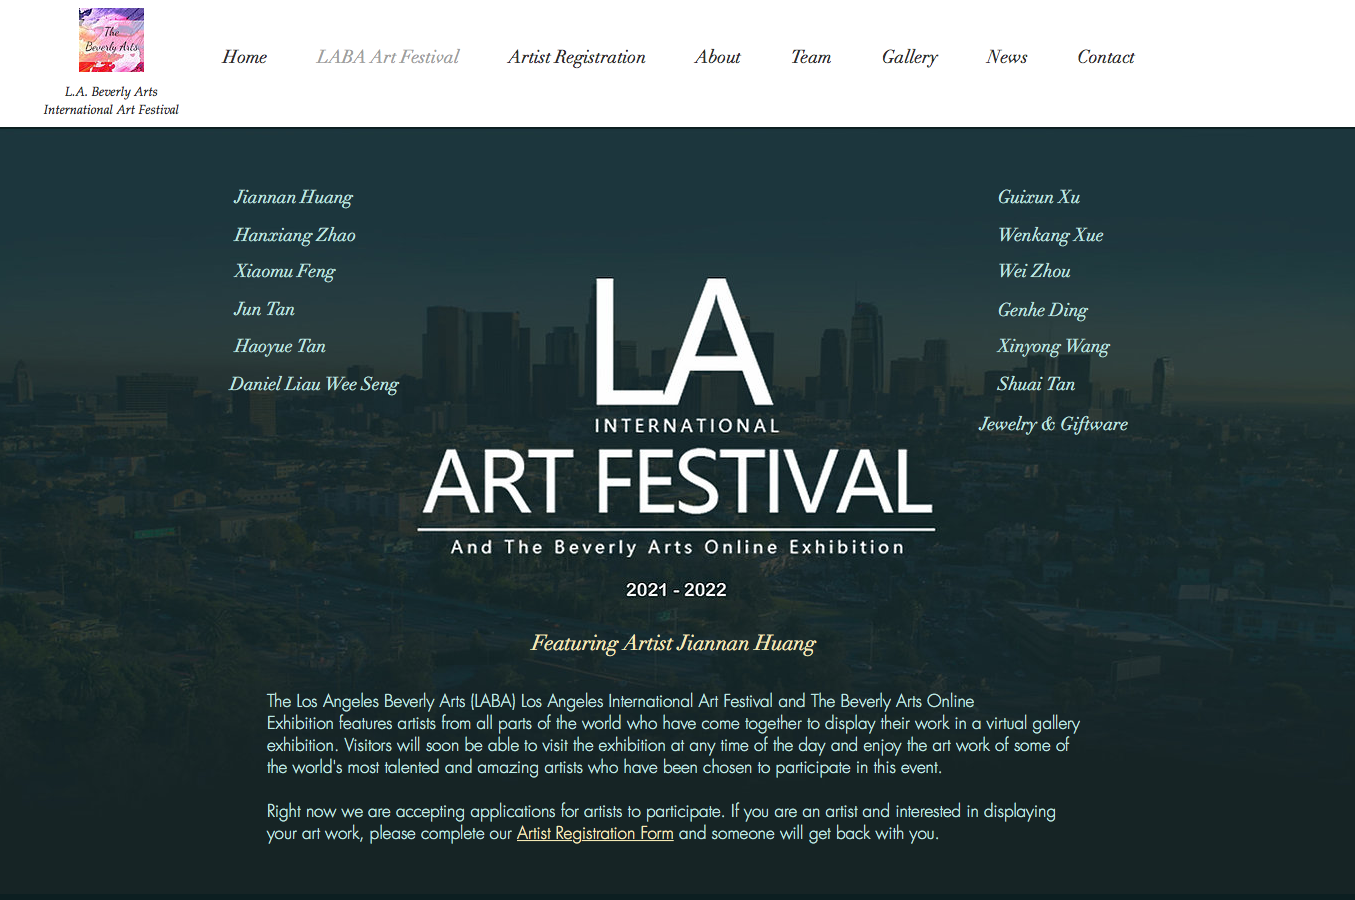 LA International ART FESTIVAL And The Beverly Arts Online Exhibition 2021-2022